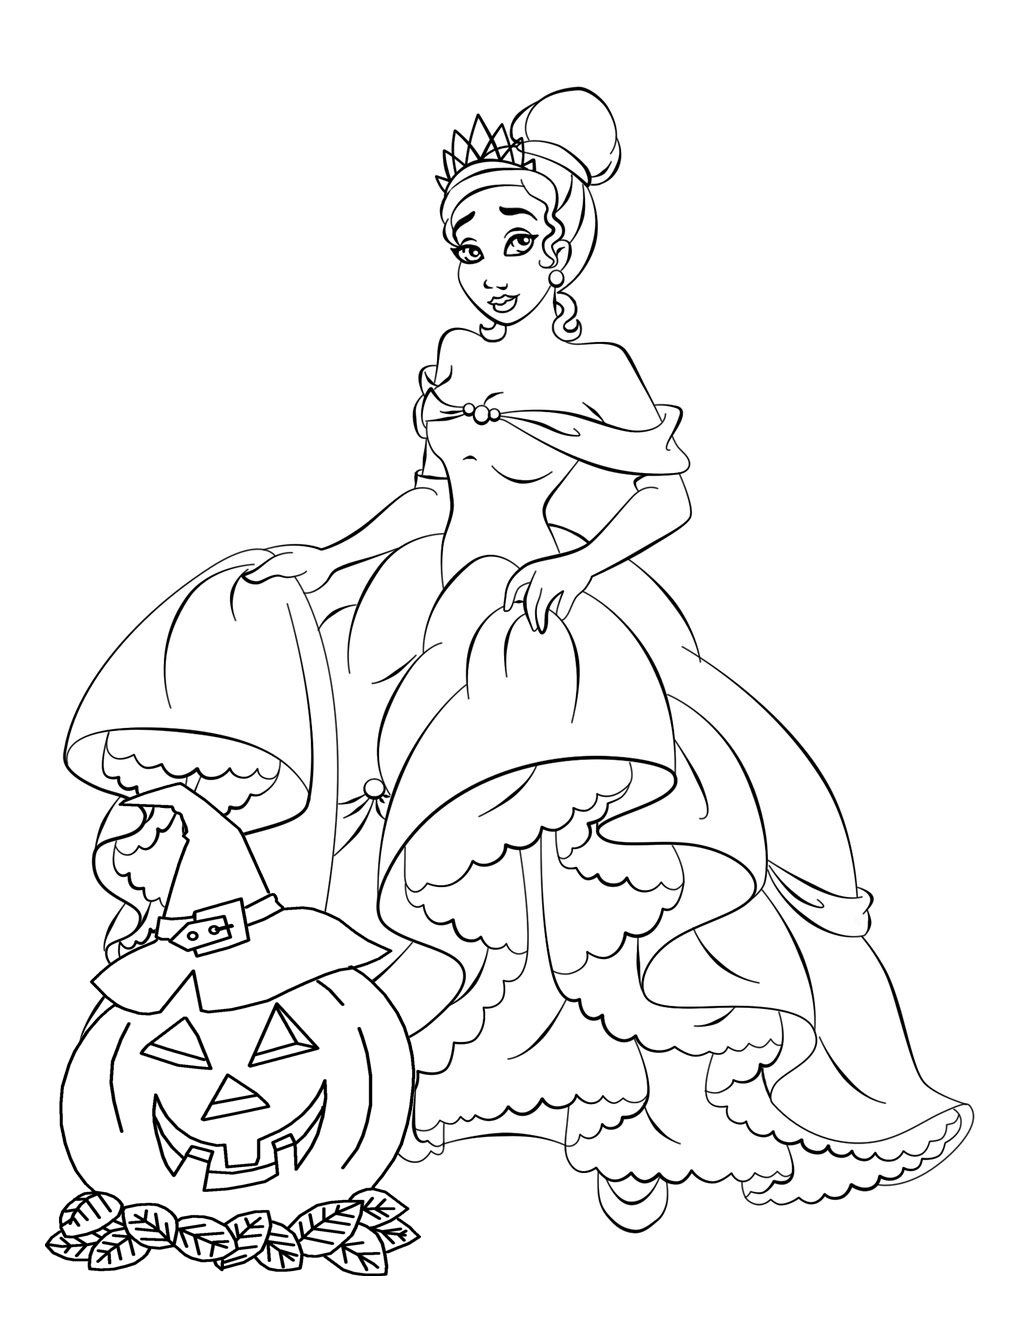 Online childrens coloring pages - Disney Princess Free Disney Halloween Coloring Pages